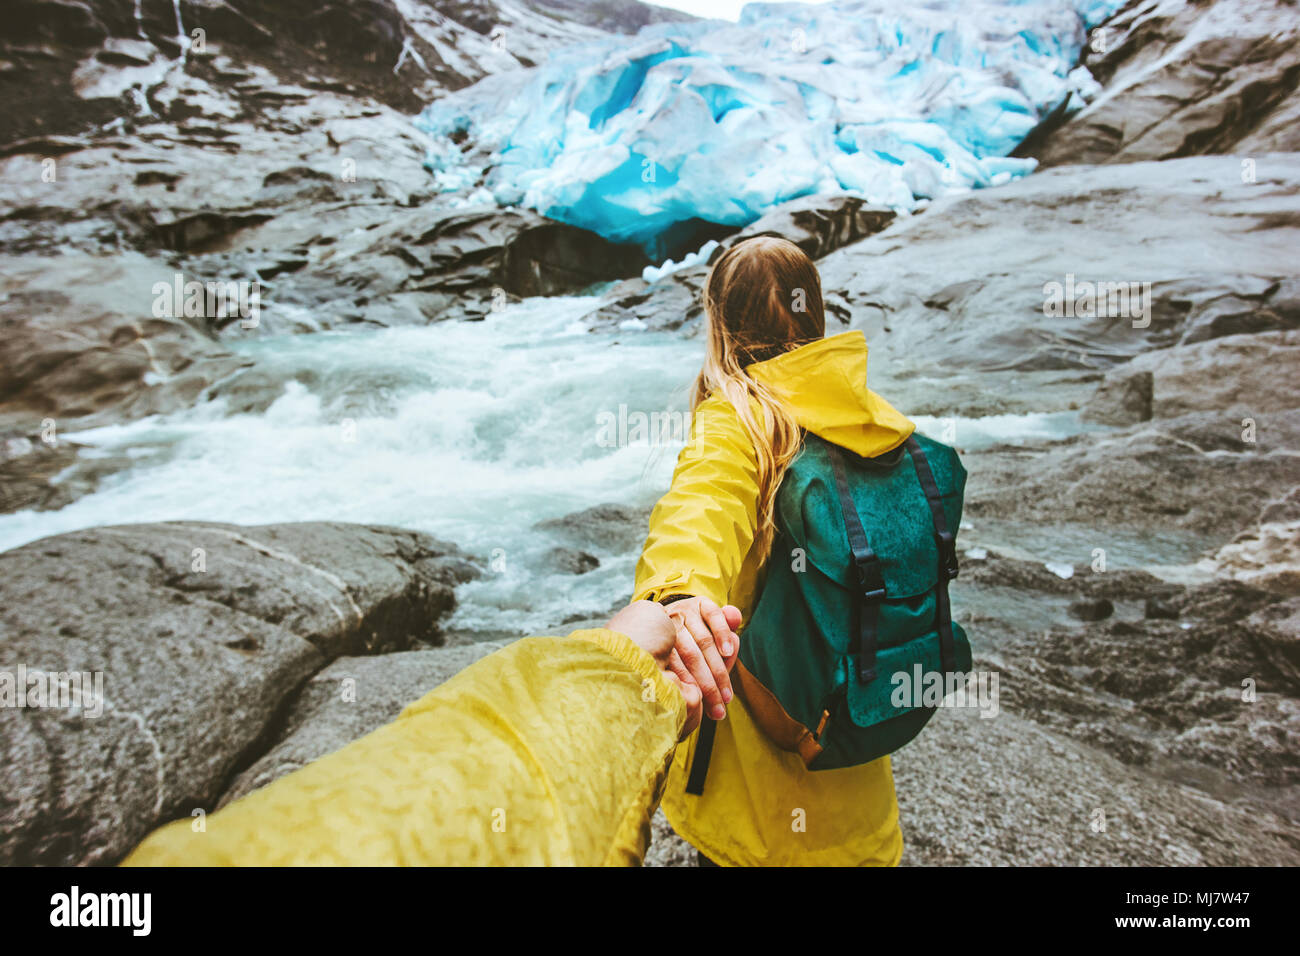 Couple travelers follow holding hands in  mountains glacier love and Travel lifestyle concept active adventure hiking vacations in Norway wild nature - Stock Image